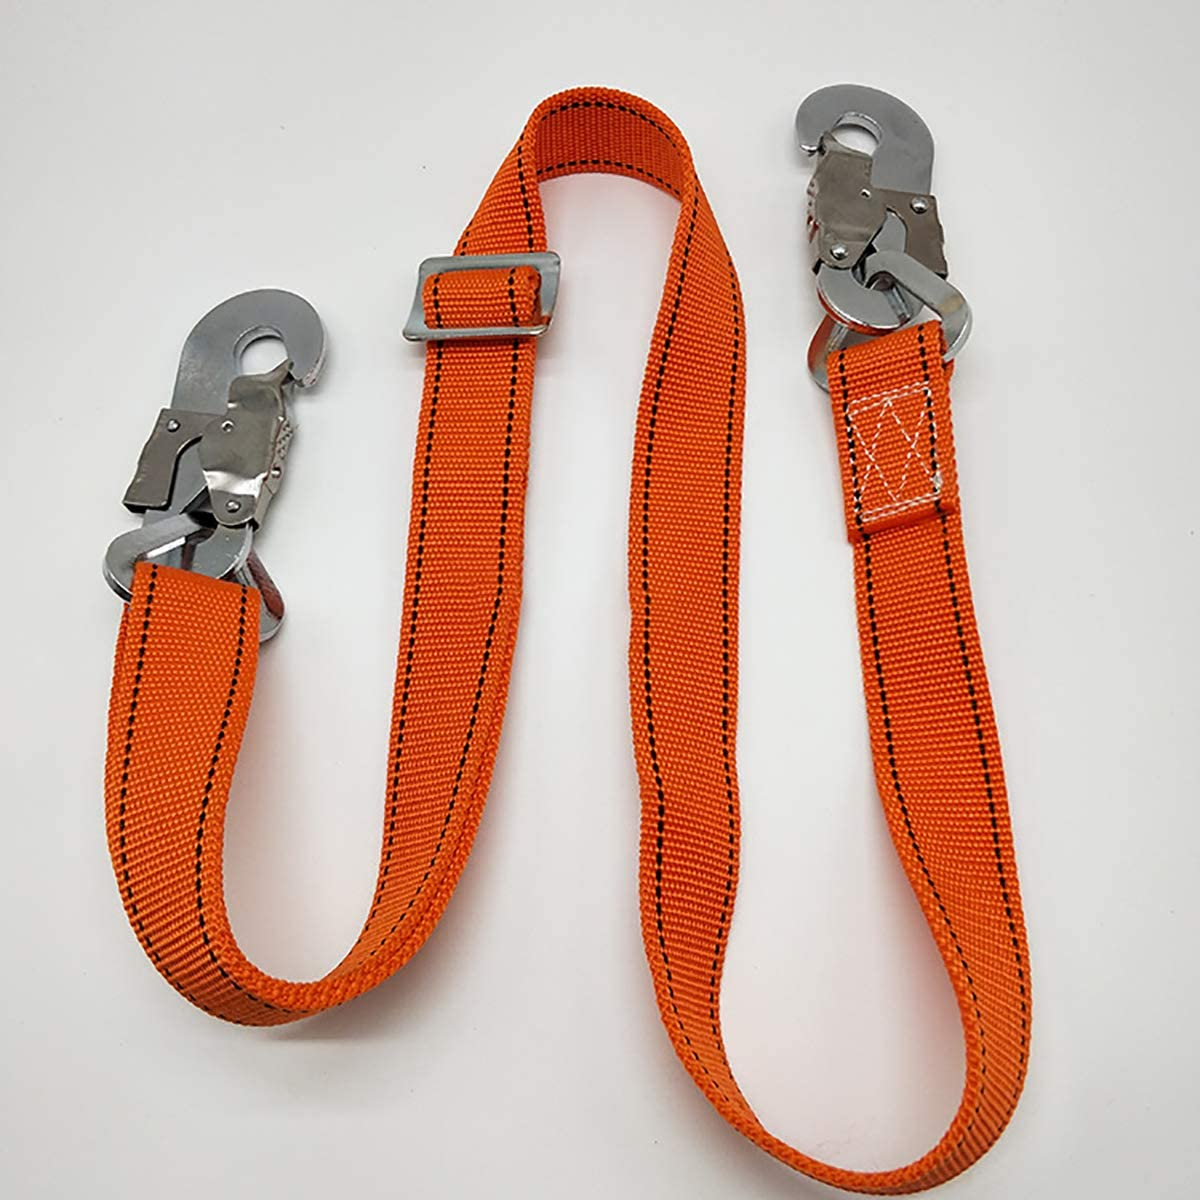 Single Leg 6ft Safety Weekly update Lanyard Protection Equipment S Outlet ☆ Free Shipping Arrest Fall